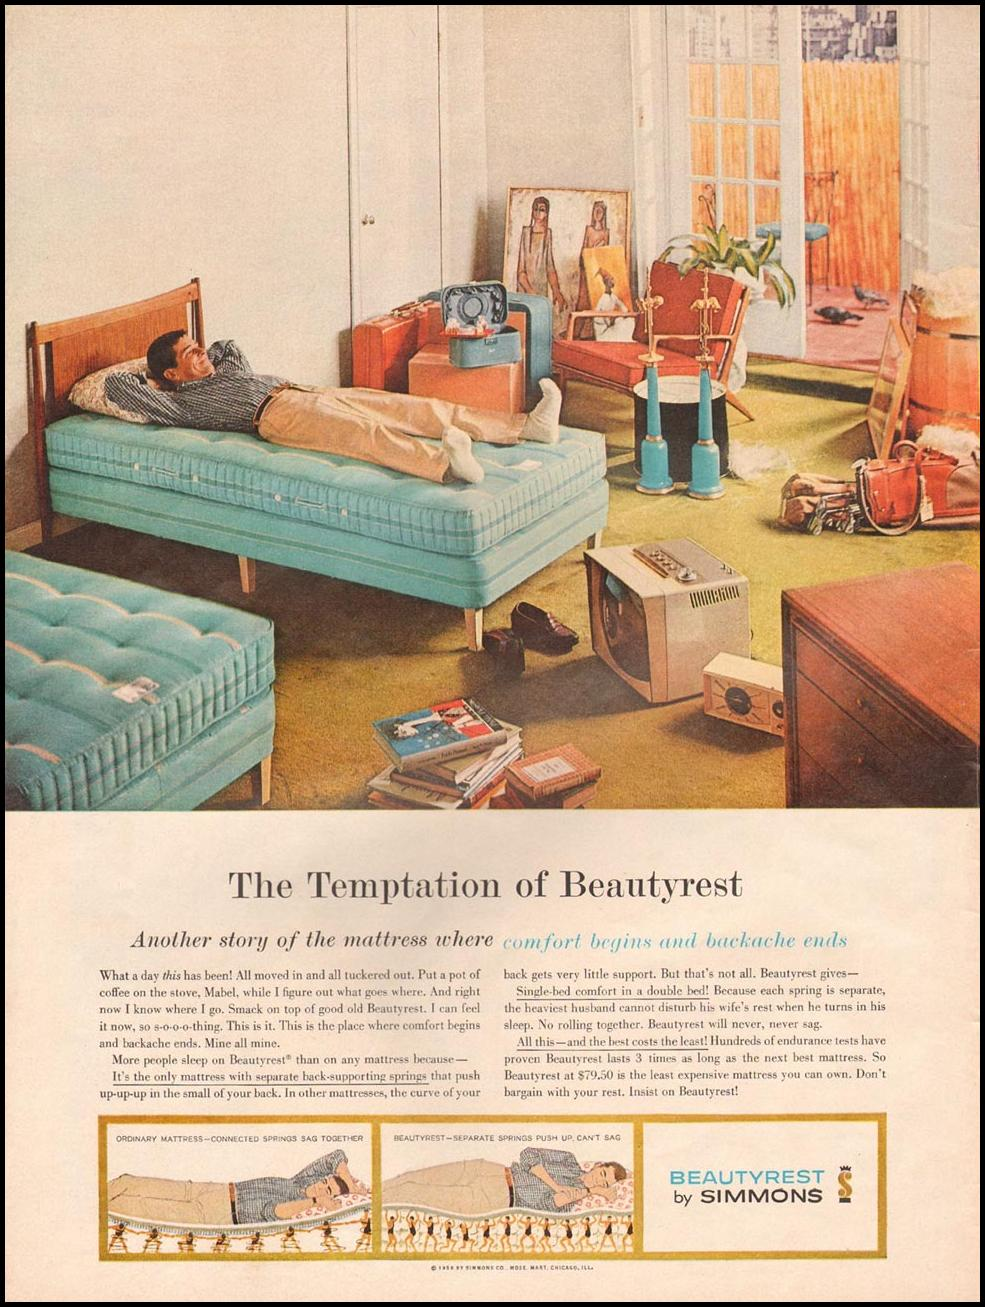 SIMMONS BEAUTYREST MATTRESS LIFE 08/10/1959